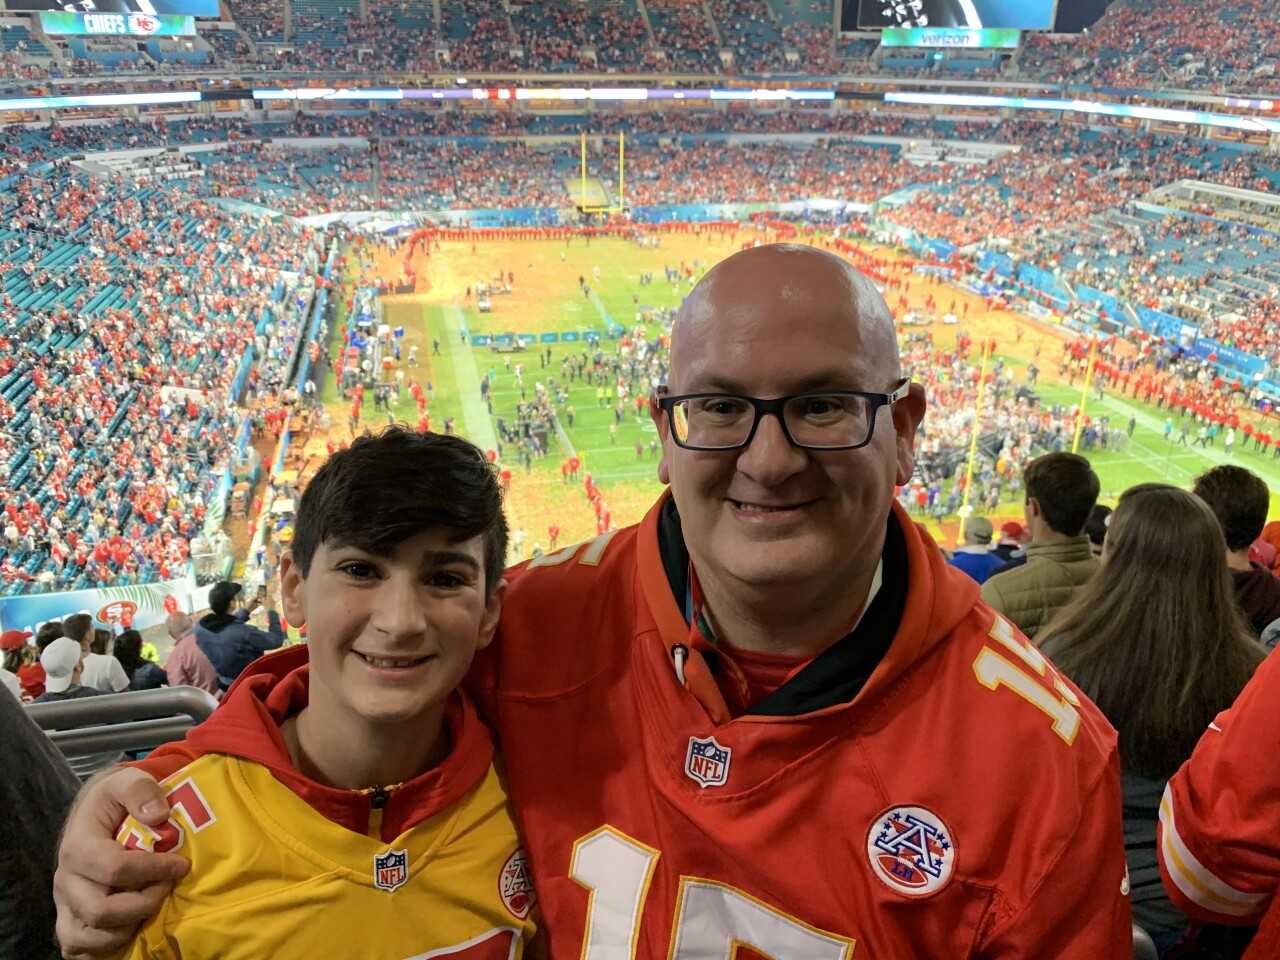 Jassey and son at Chiefs game